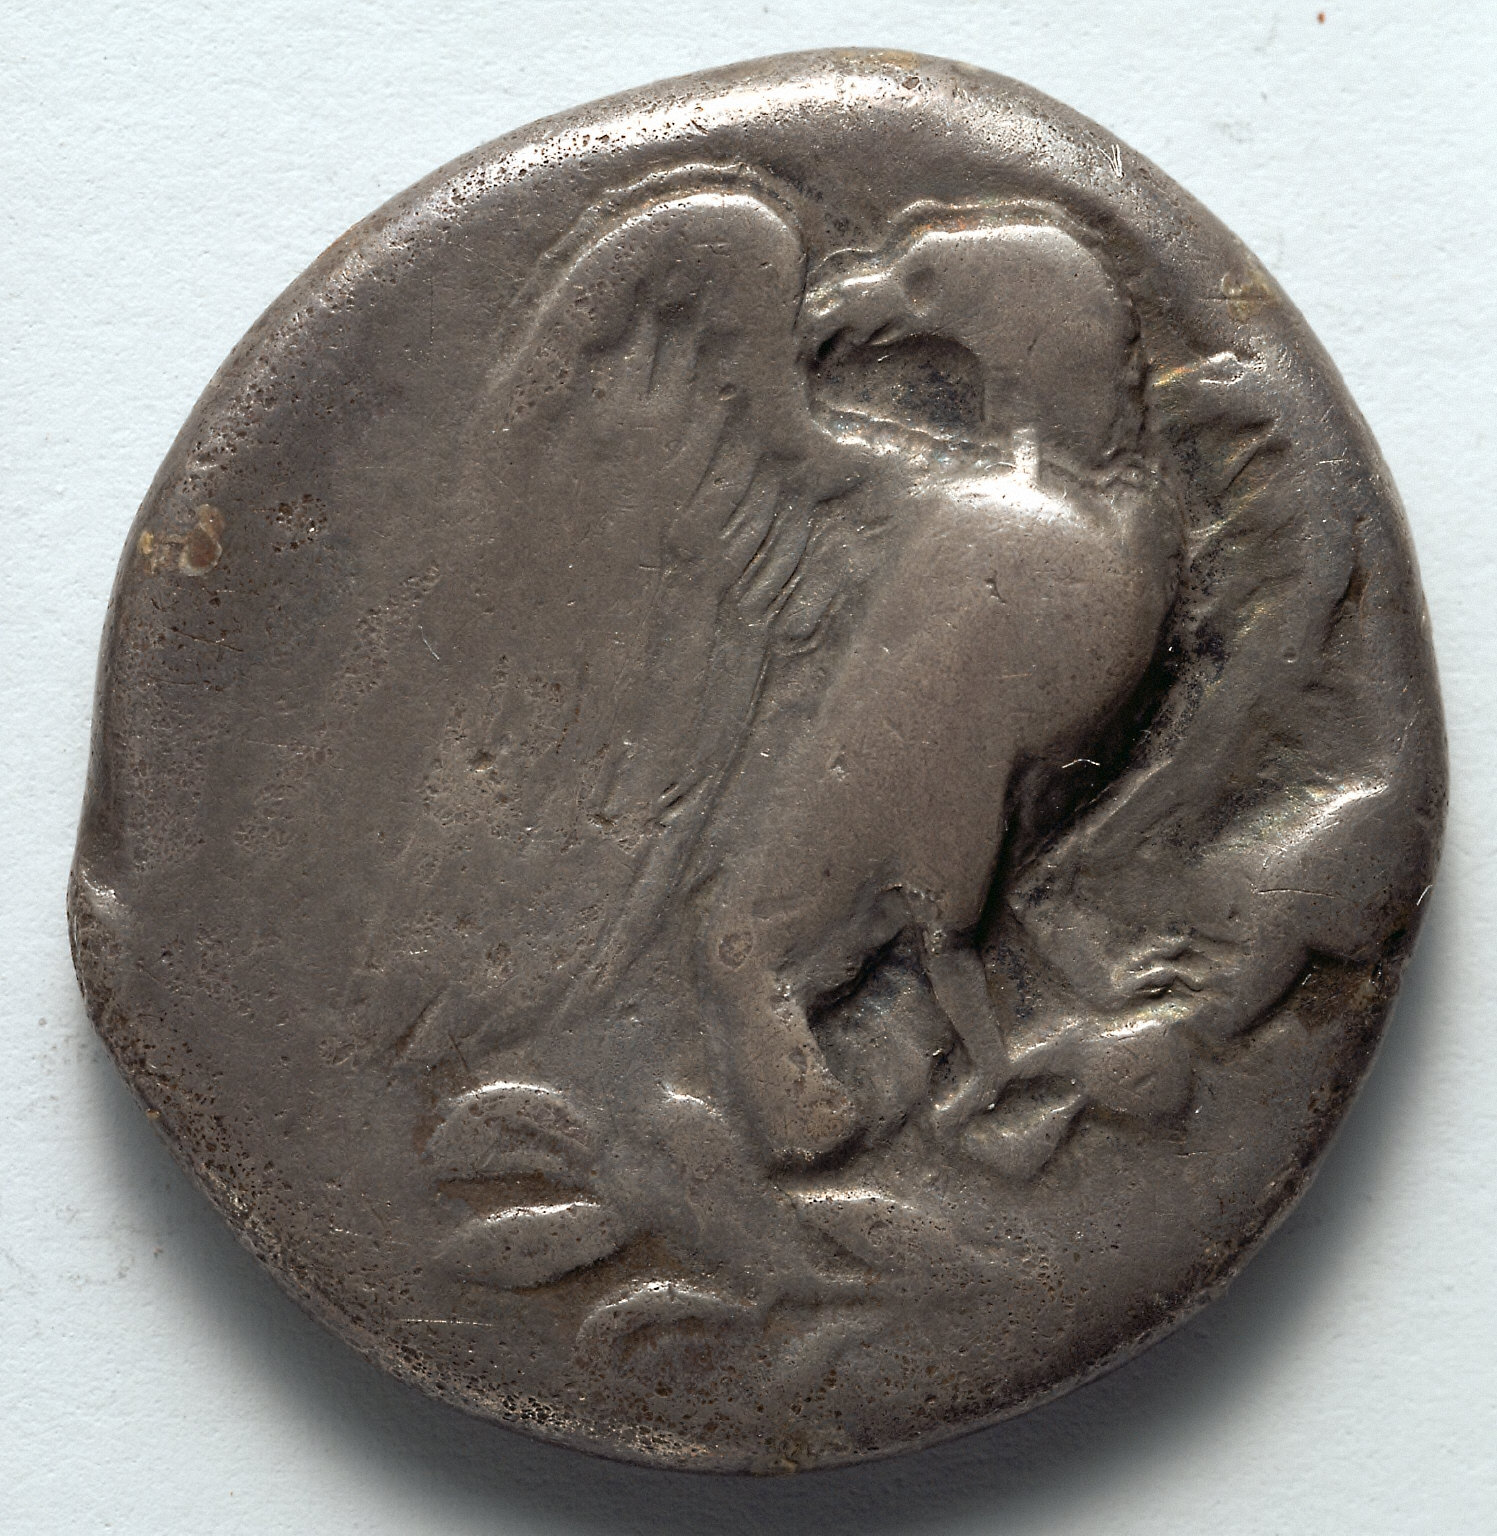 Stater: Eagle with Spread Wings on Olive Branch (obverse)